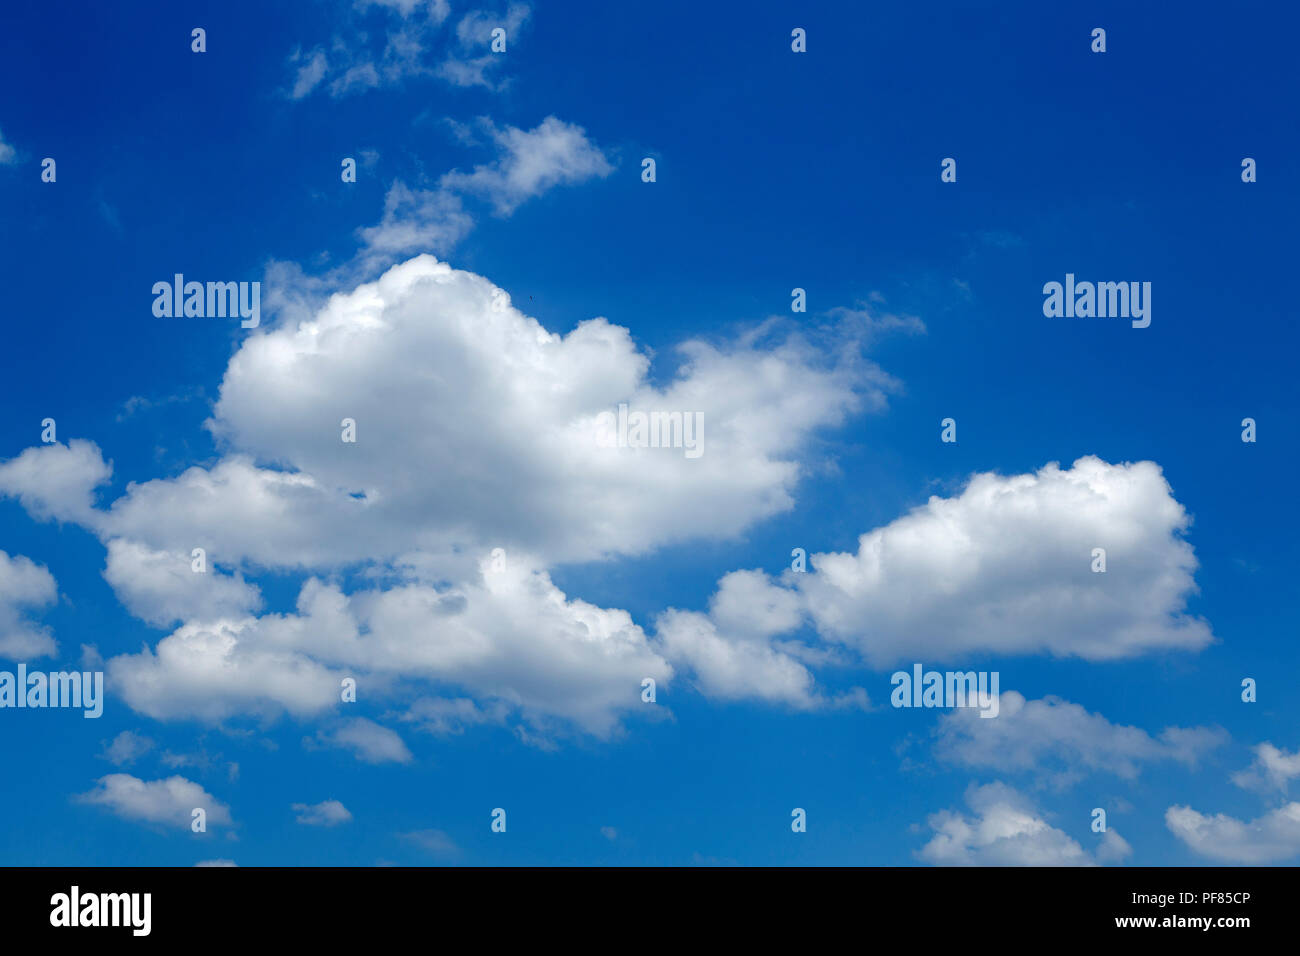 clouds in the sky, Germany - Stock Image